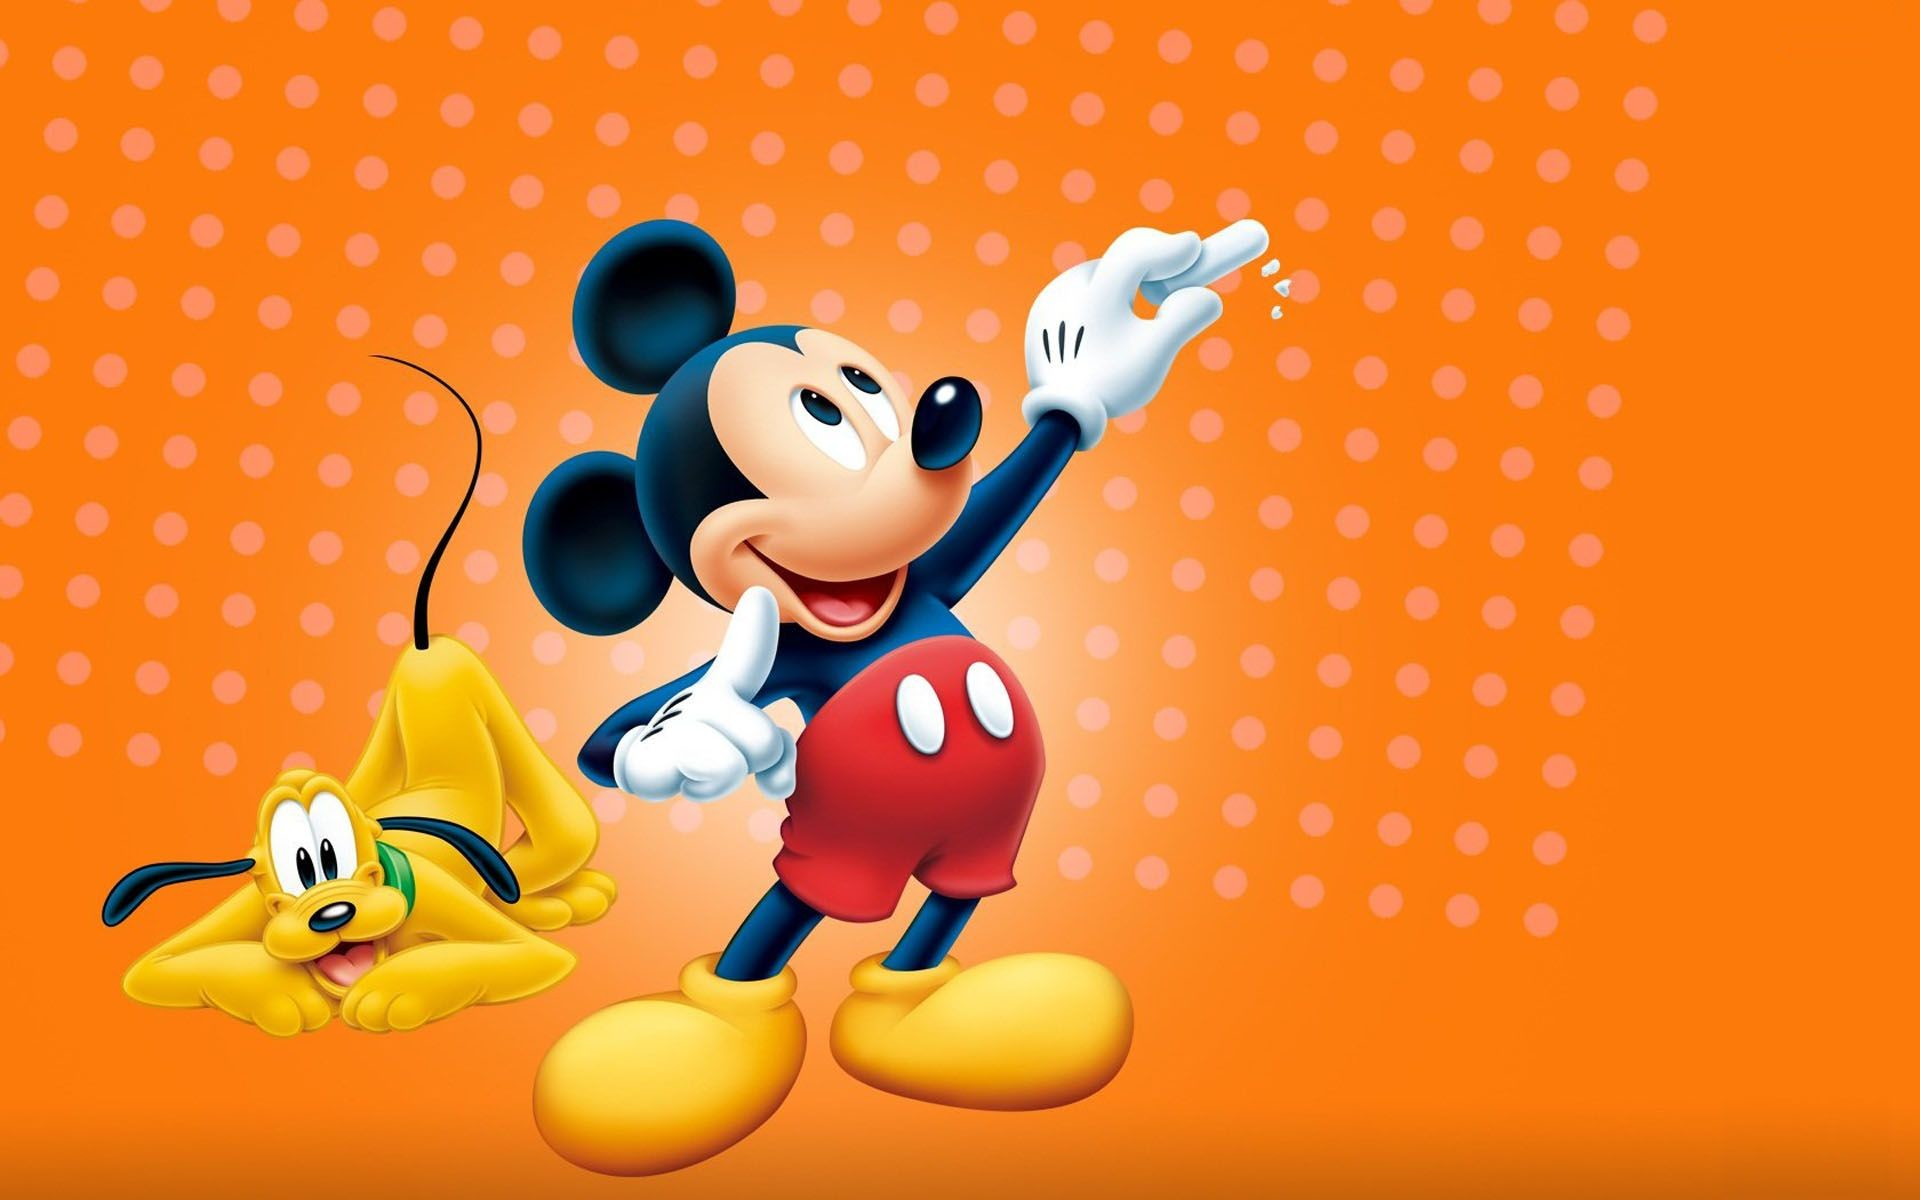 1920x1200 9. mickey-mouse-wallpapers1-600x375